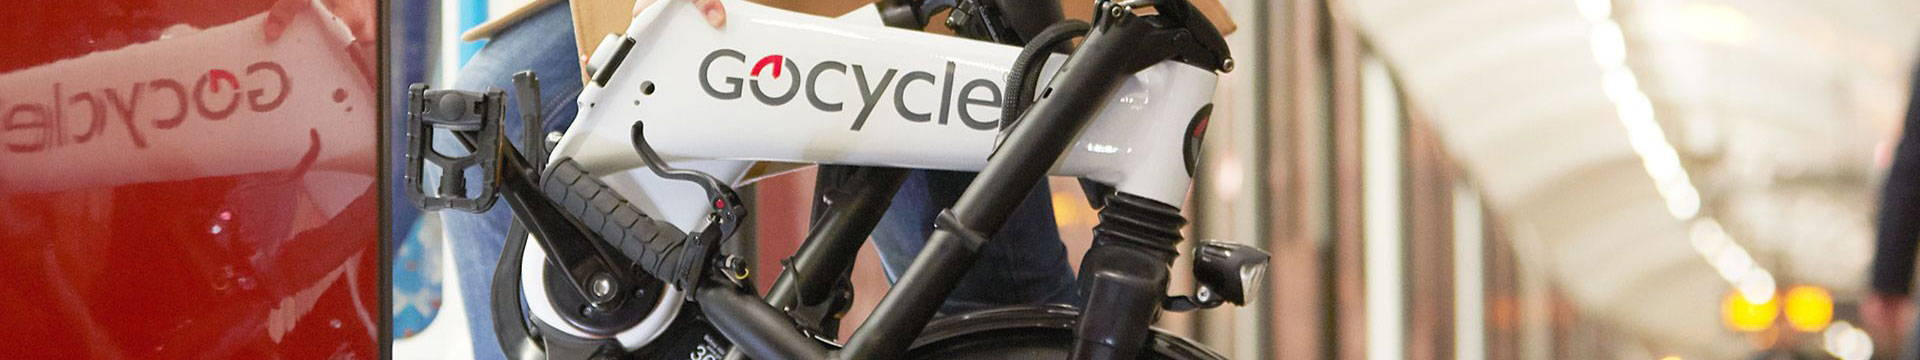 Portable folding bikes from GoCycle.